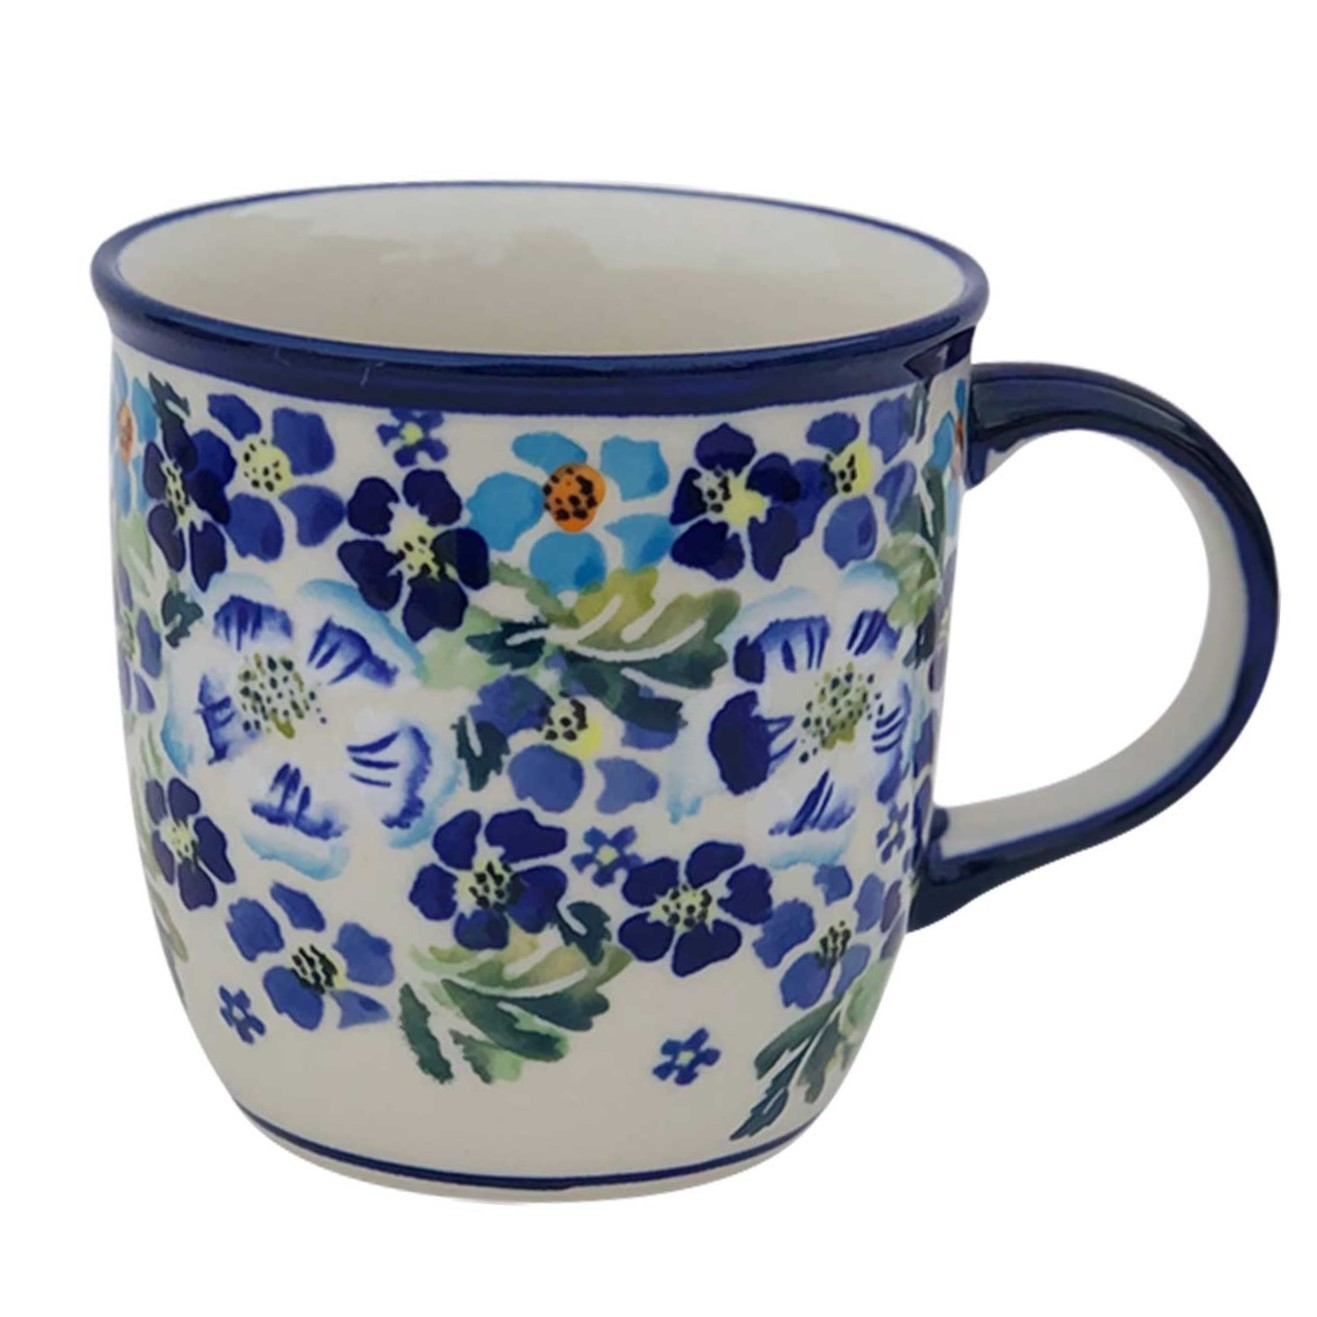 Pottery Avenue 12oz Stoneware Coffee Mug - 1105-DU207 True Blues